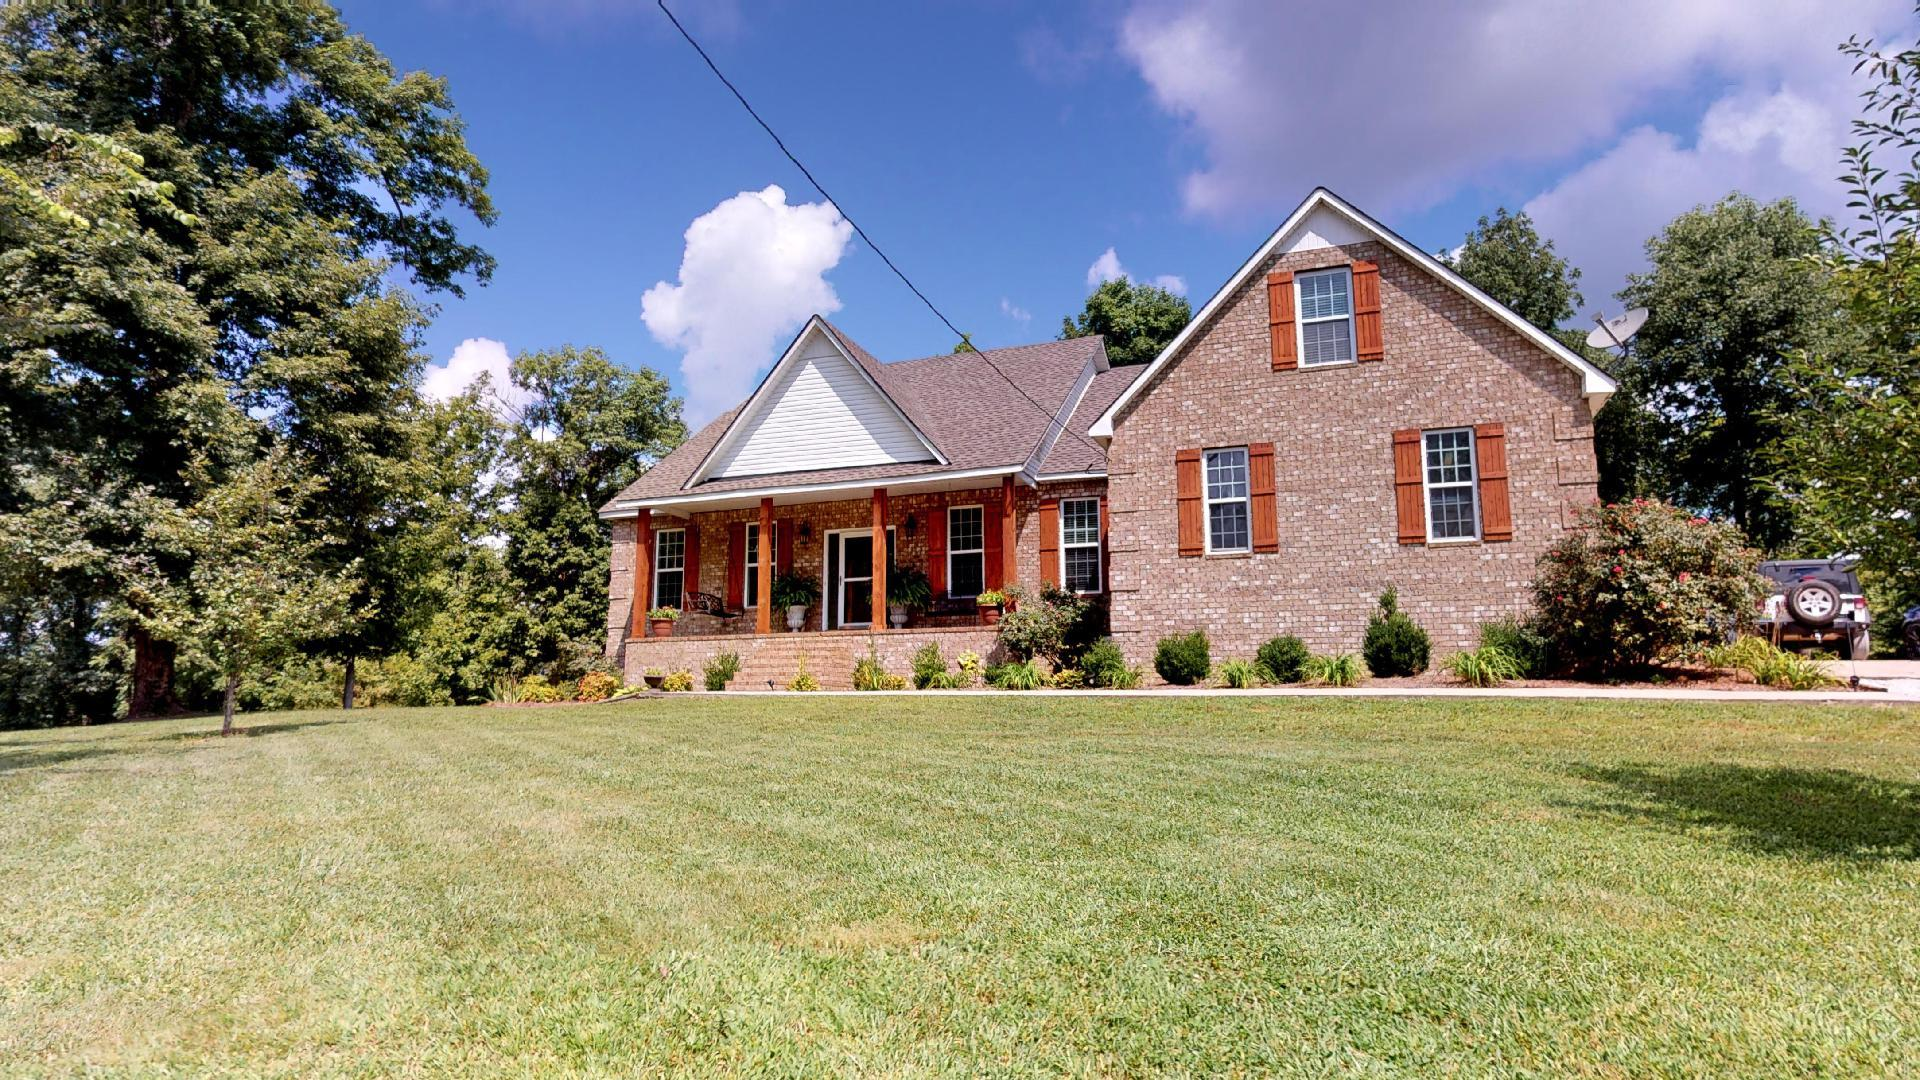 1489 Newman Rd, Ardmore, TN 38449 - Ardmore, TN real estate listing